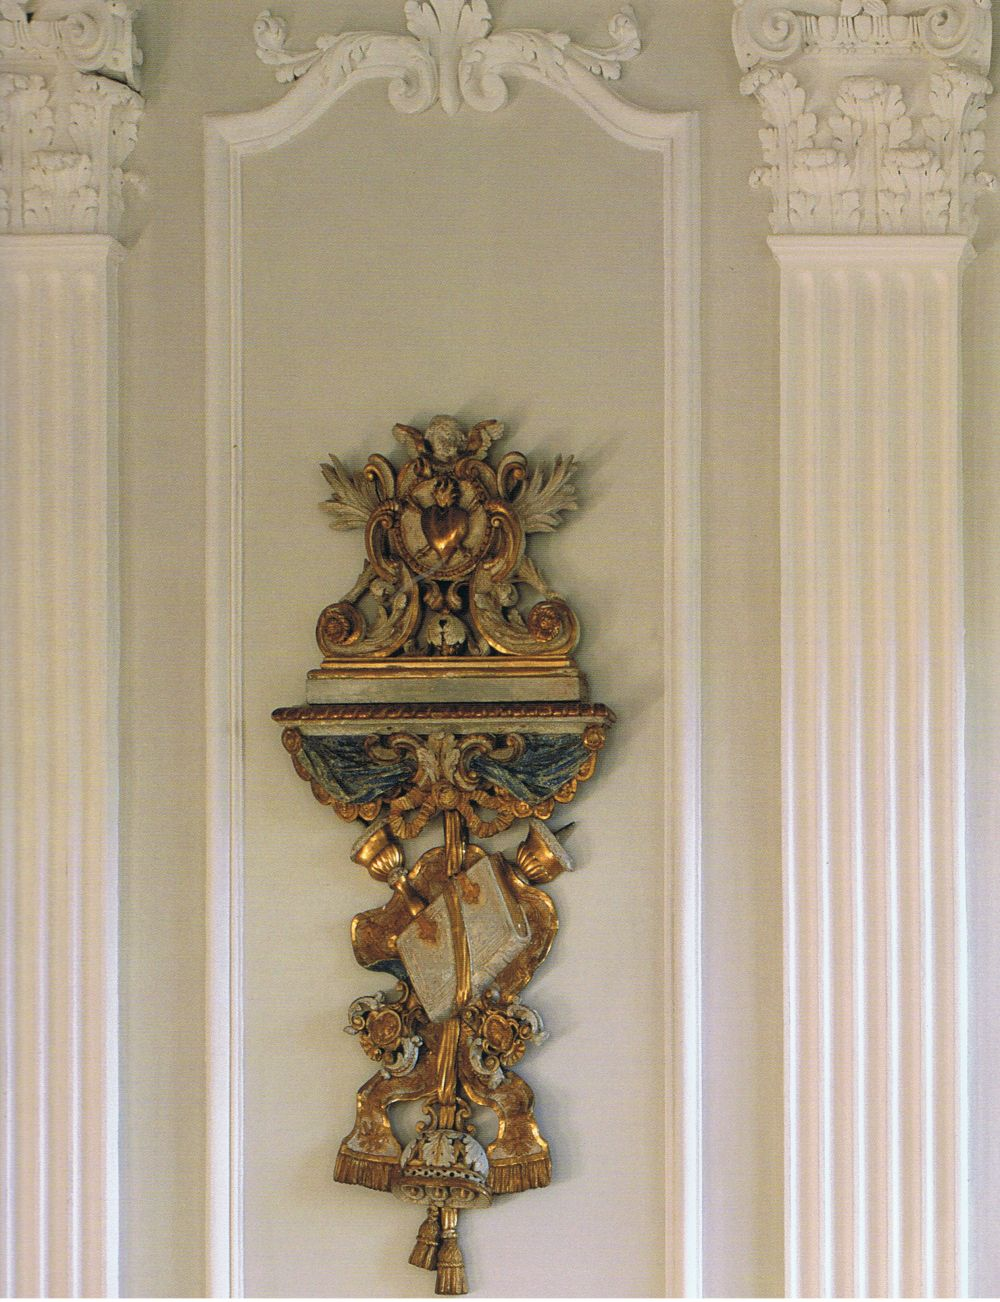 Paper Illusions the Art of Isabelle de Borchgrave Carved, gilded, a touch of blue and old white…